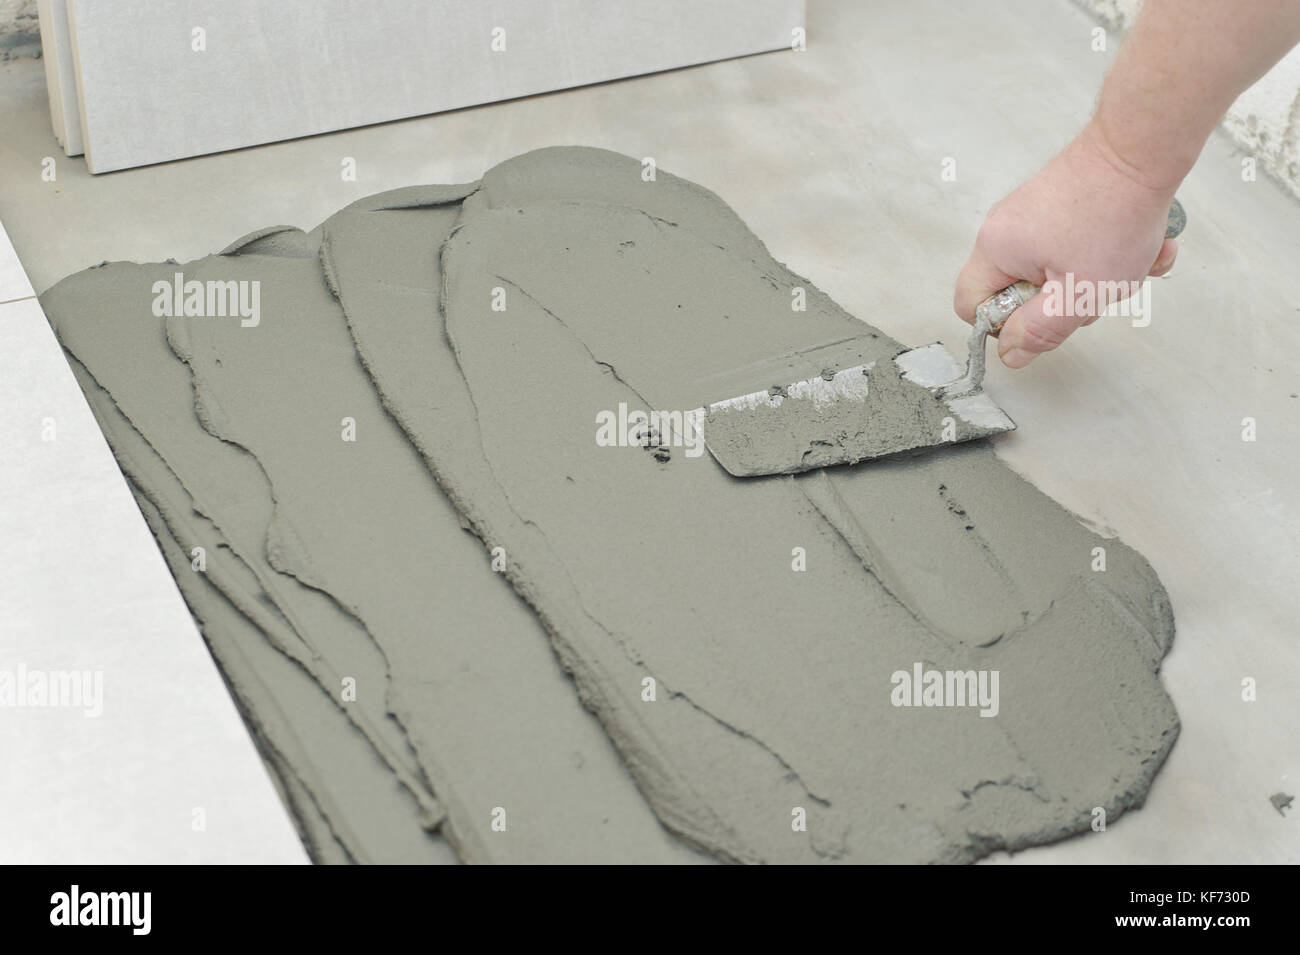 Tile Floor Adhesive Stock Photos Tile Floor Adhesive Stock Images